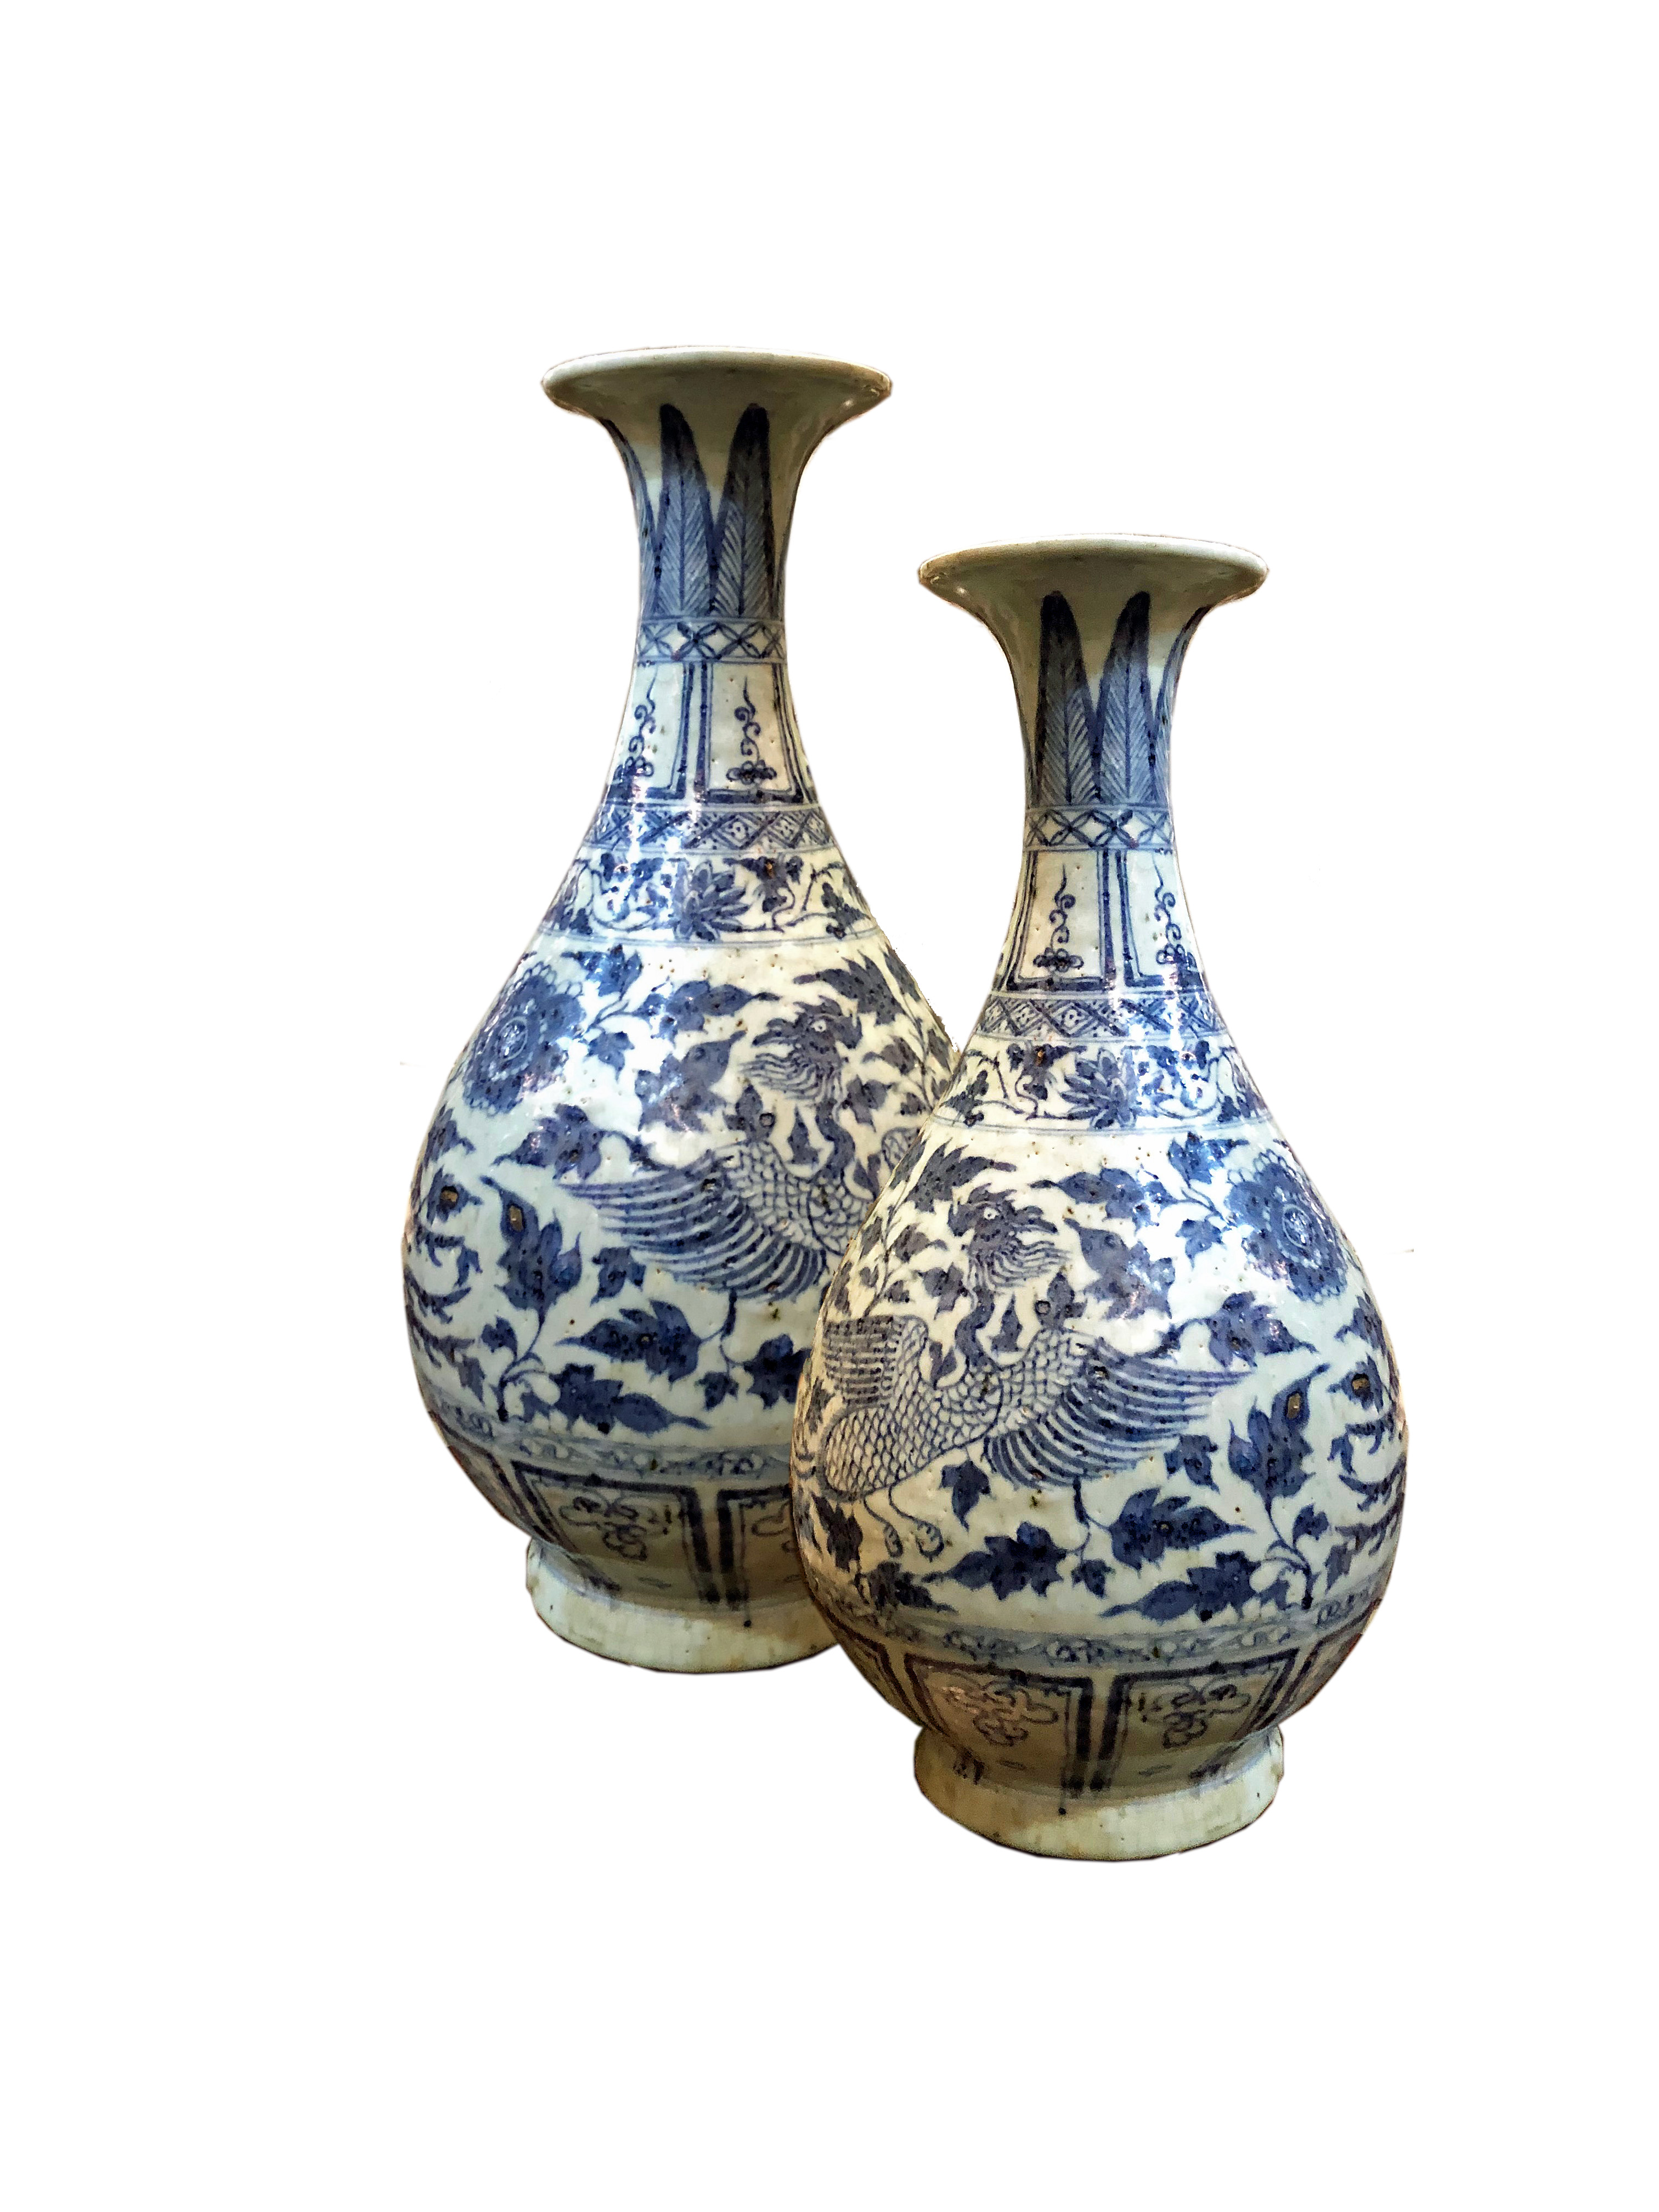 A Pair of Chinese Export Blue and White Porcelain Vases No. 4787